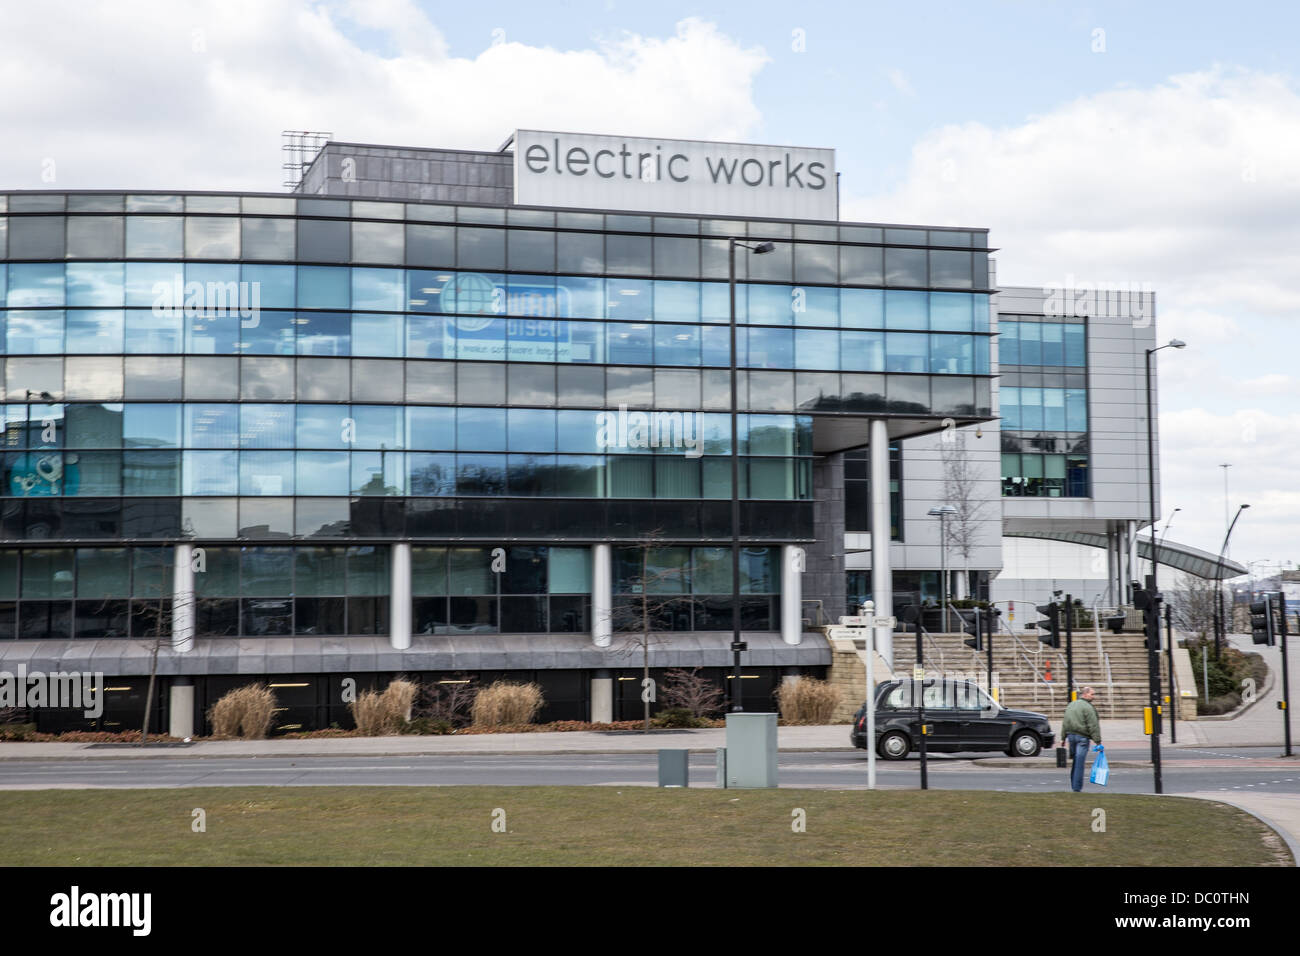 Home office sheffield address - Stock Photo The Electric Works Office Building In Sheffield Home Of Warp Films South Yorkshire Uk United Kingdom Europe